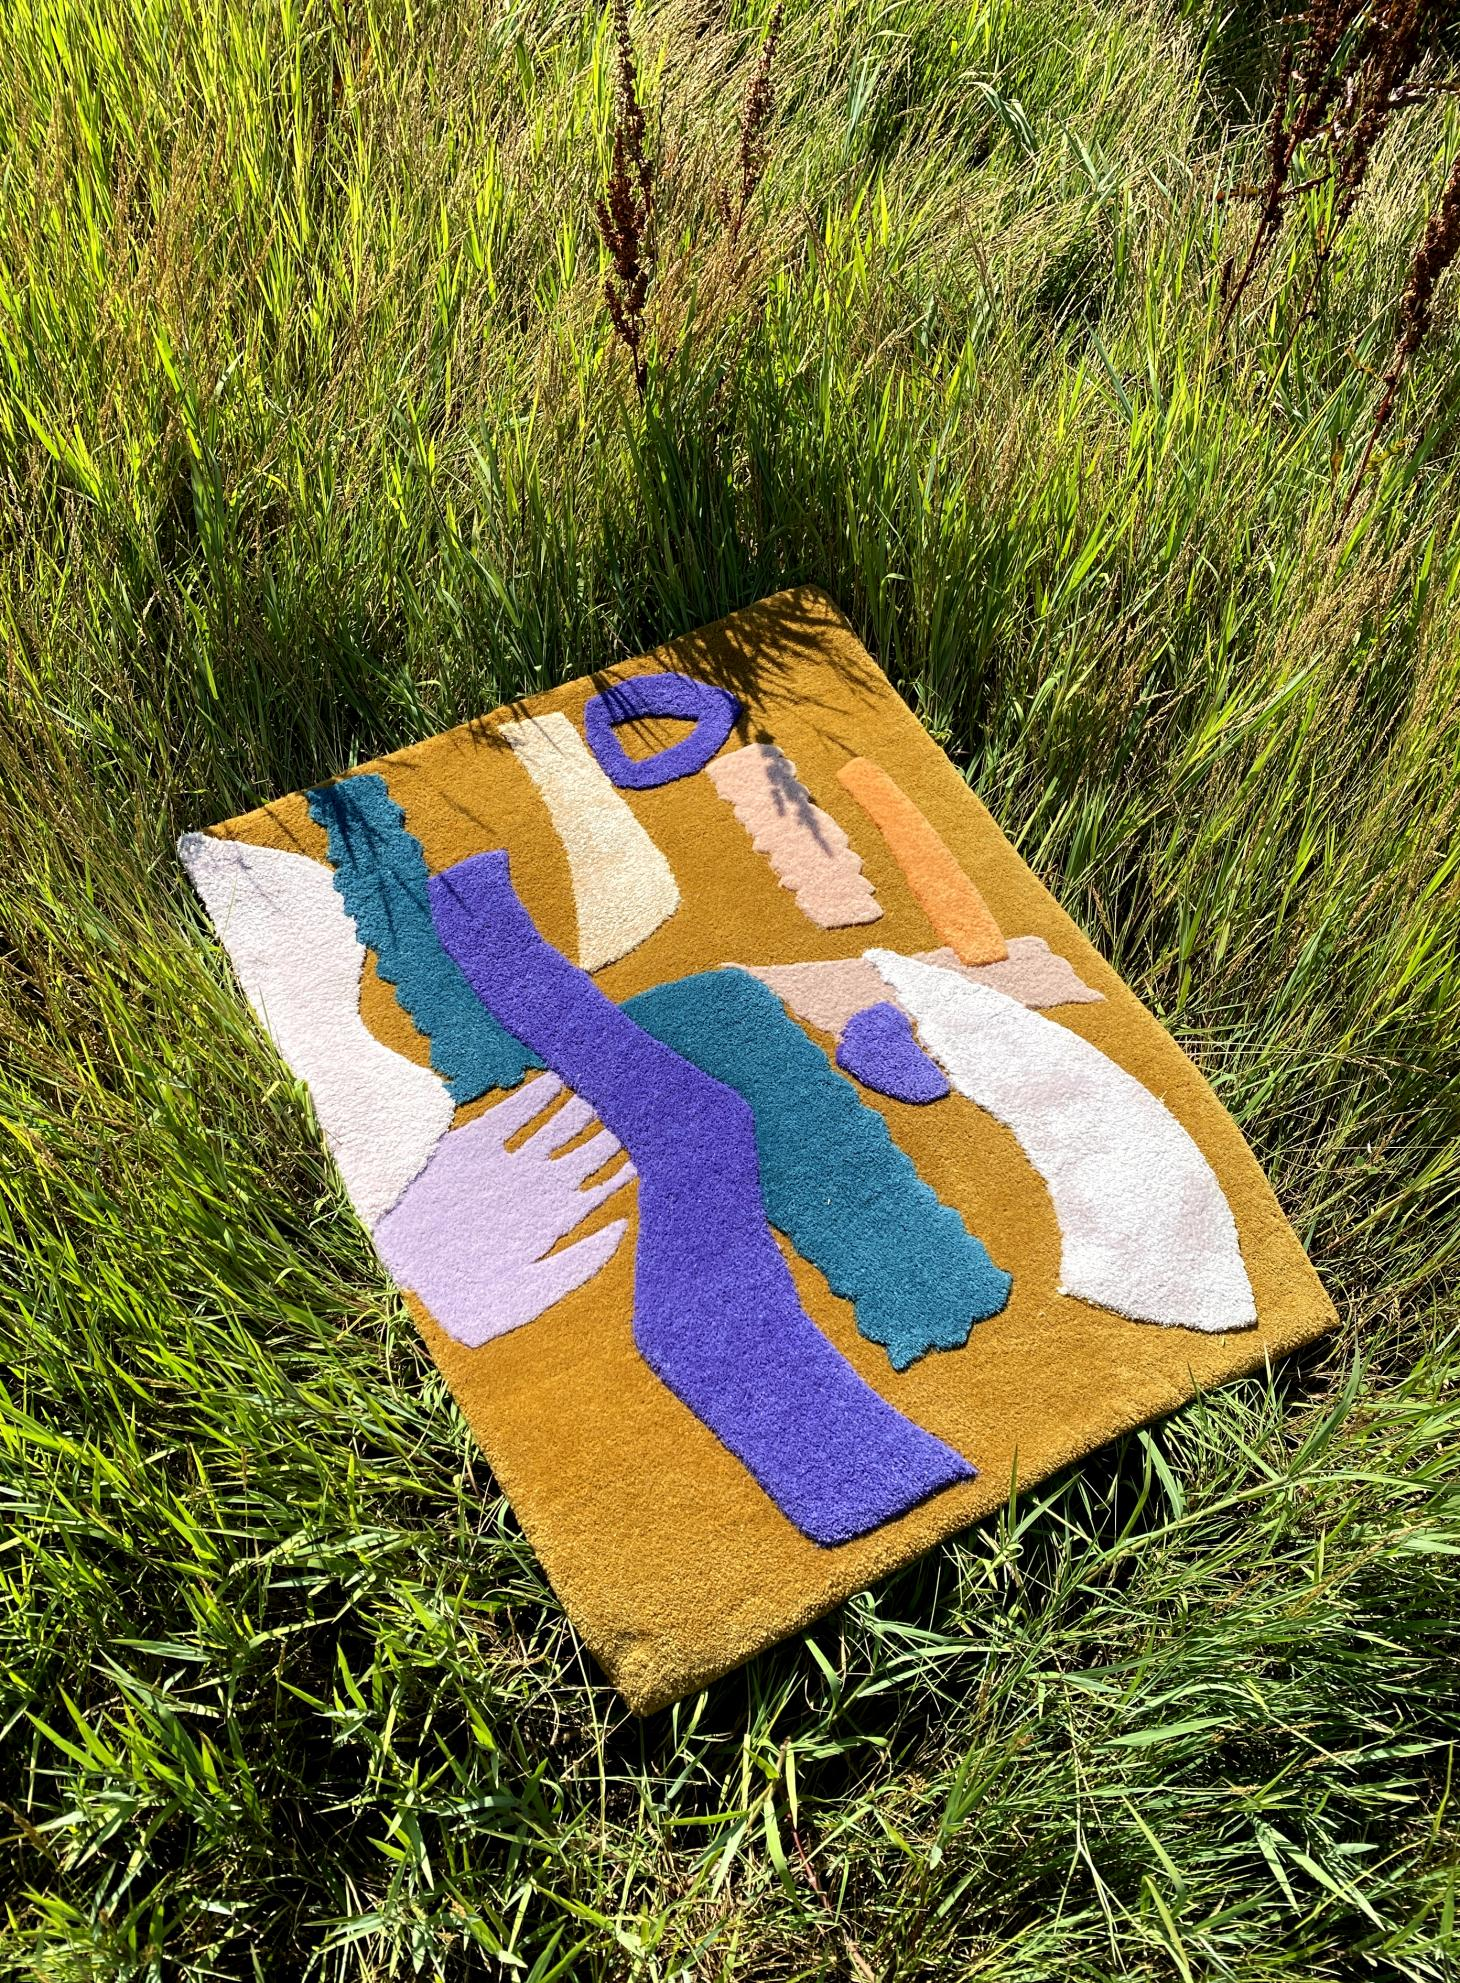 A colorful rug by Alex Proba laying on grass